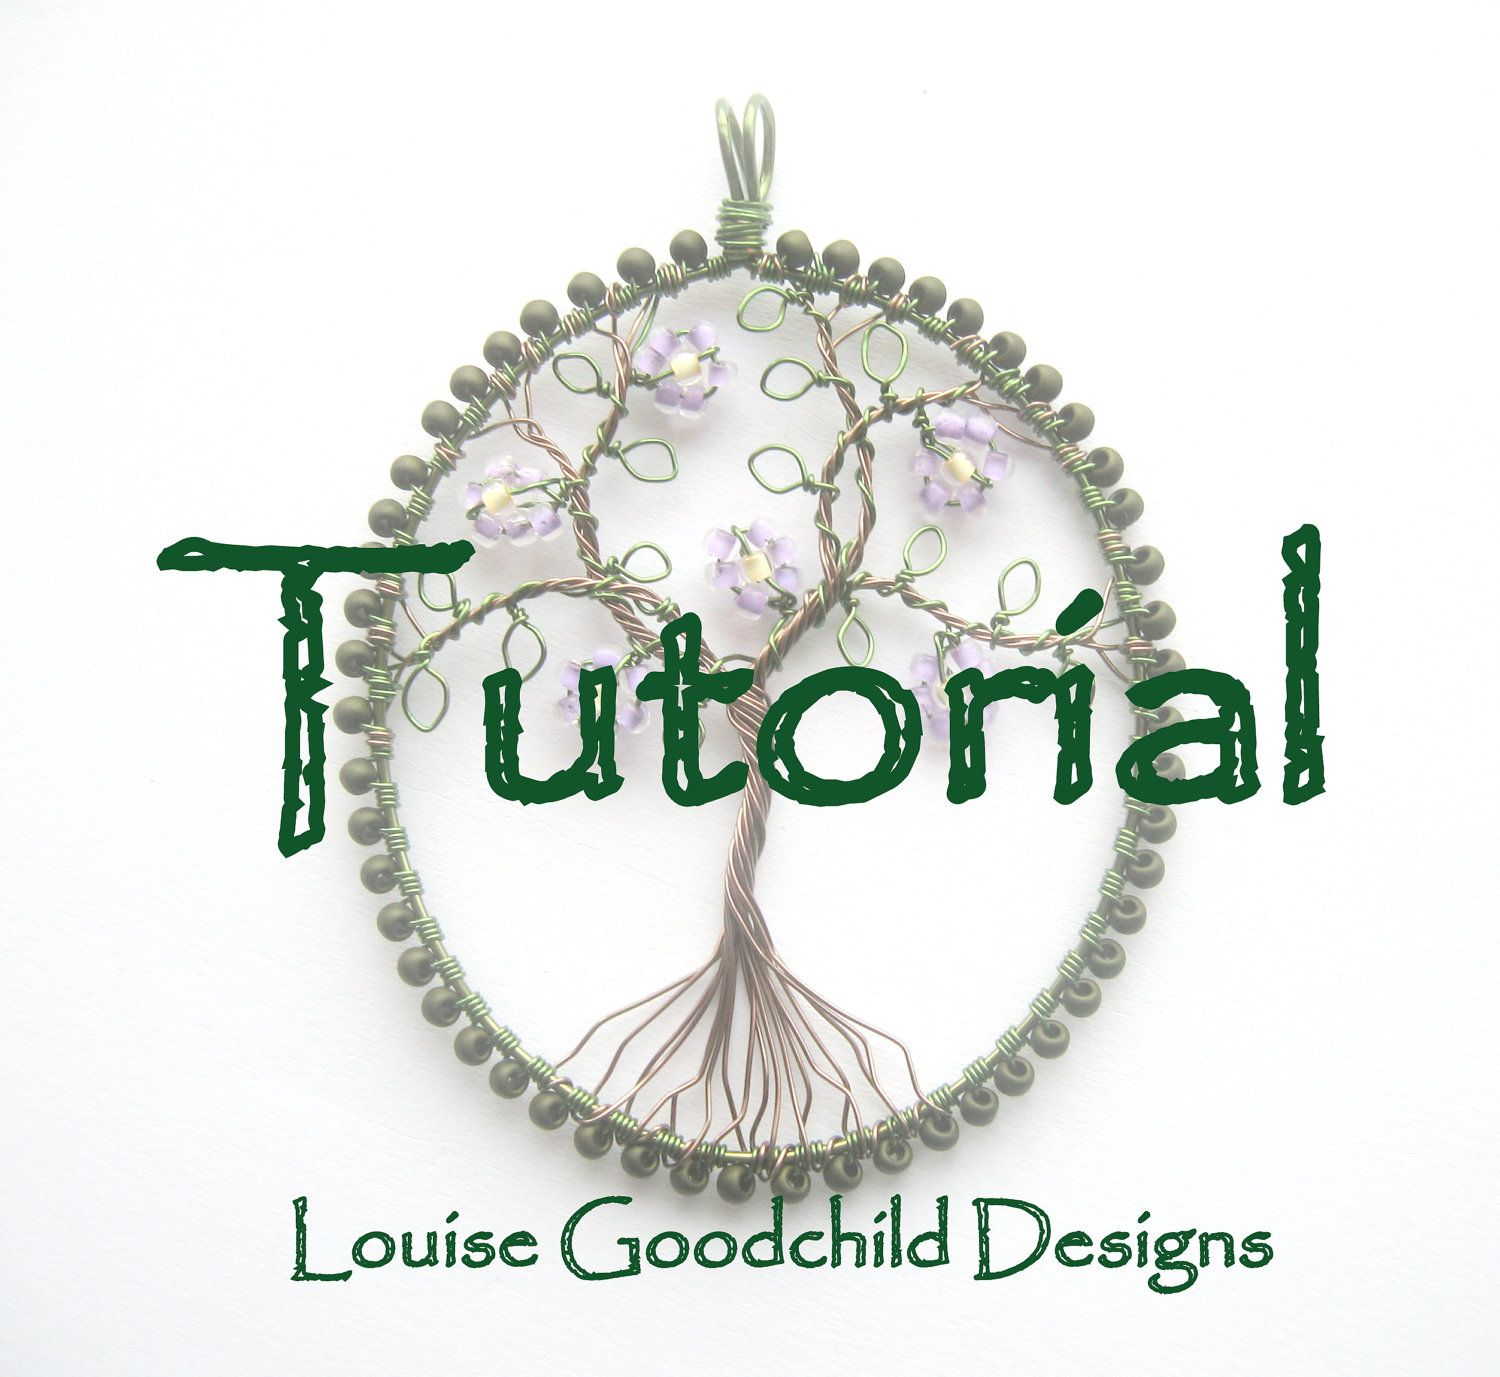 Best wire tree tutorial photos wiring diagram ideas blogitia wire tree tutorial tree tutorial diy pendant tree of life mozeypictures Image collections